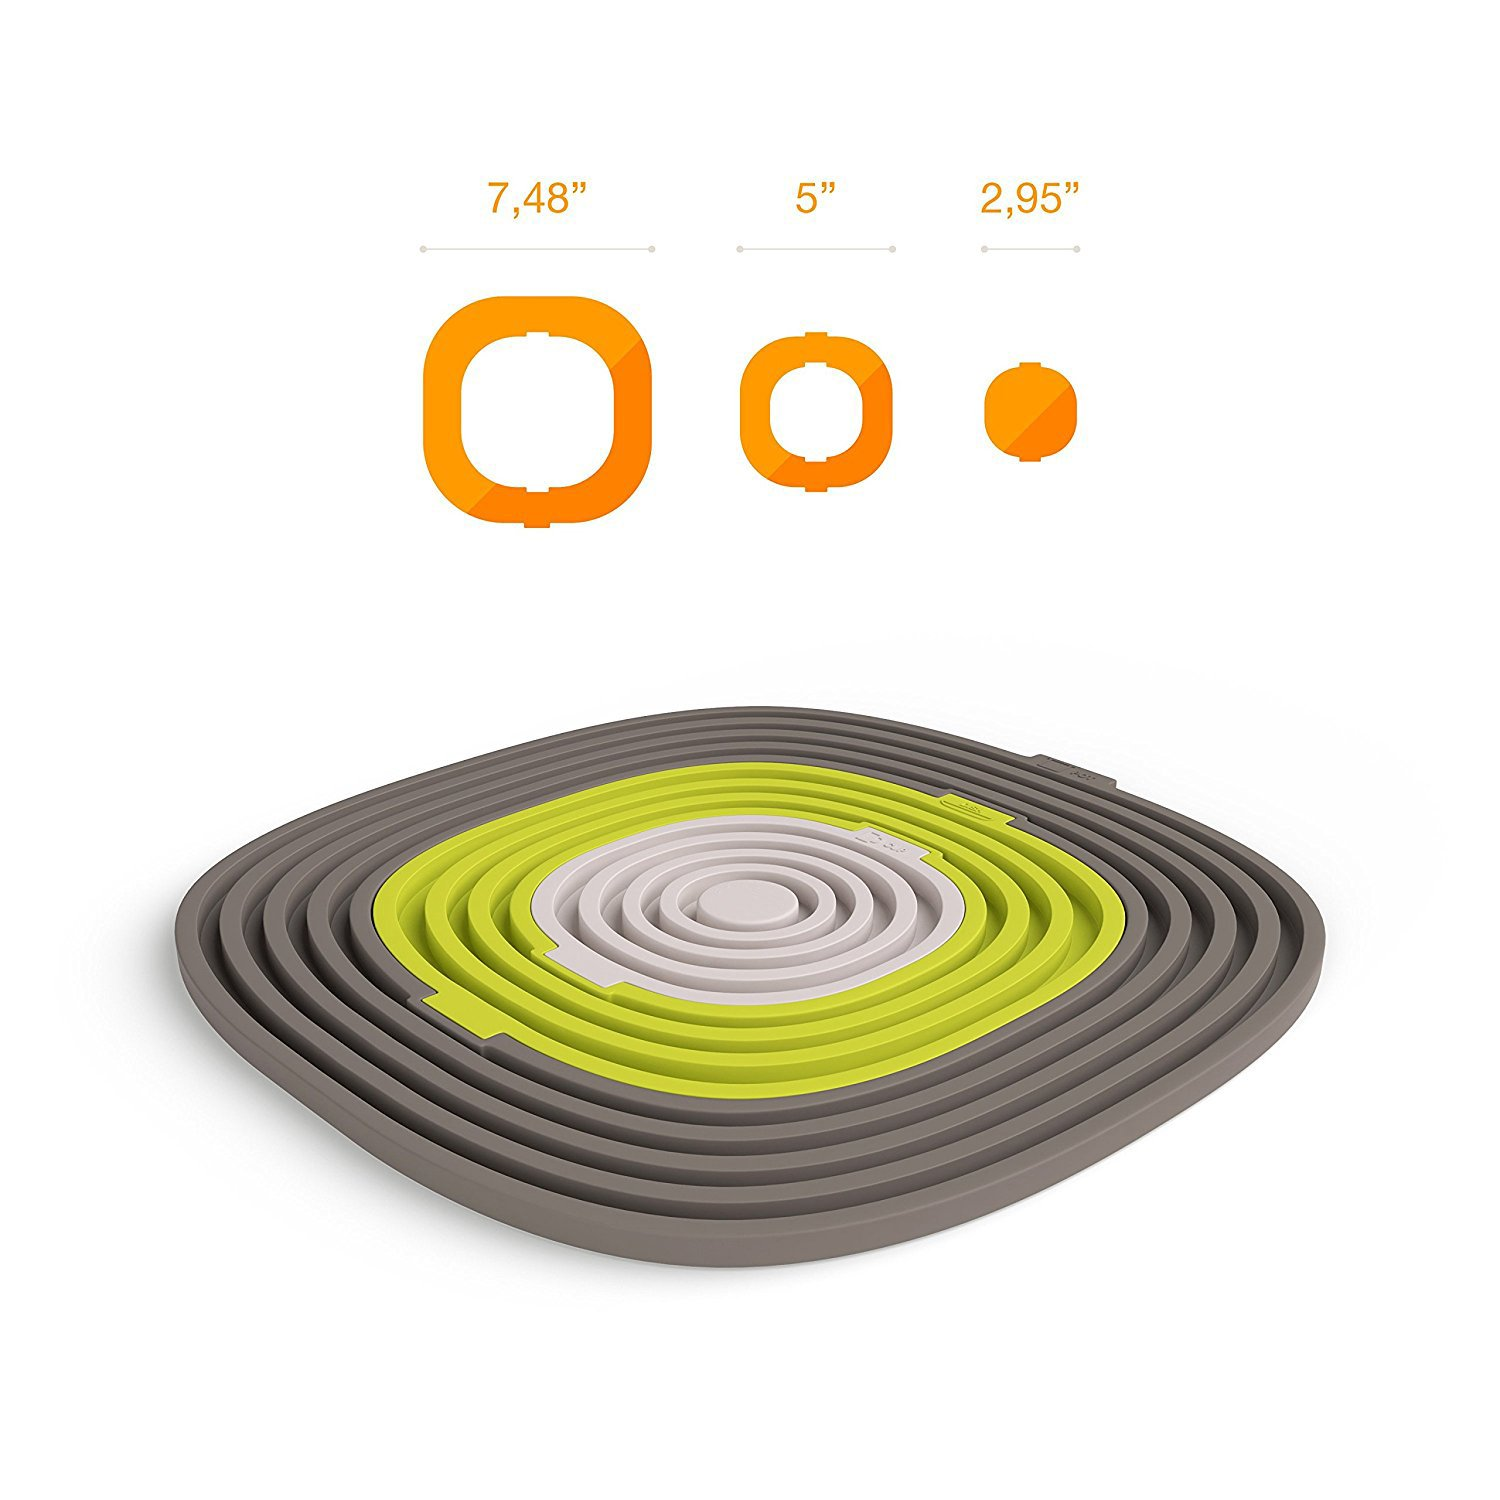 round Hot Pod Non Slip Coasters Collapsible Large Silicone Trivet mat Spoon Rest gray Heat Resistant